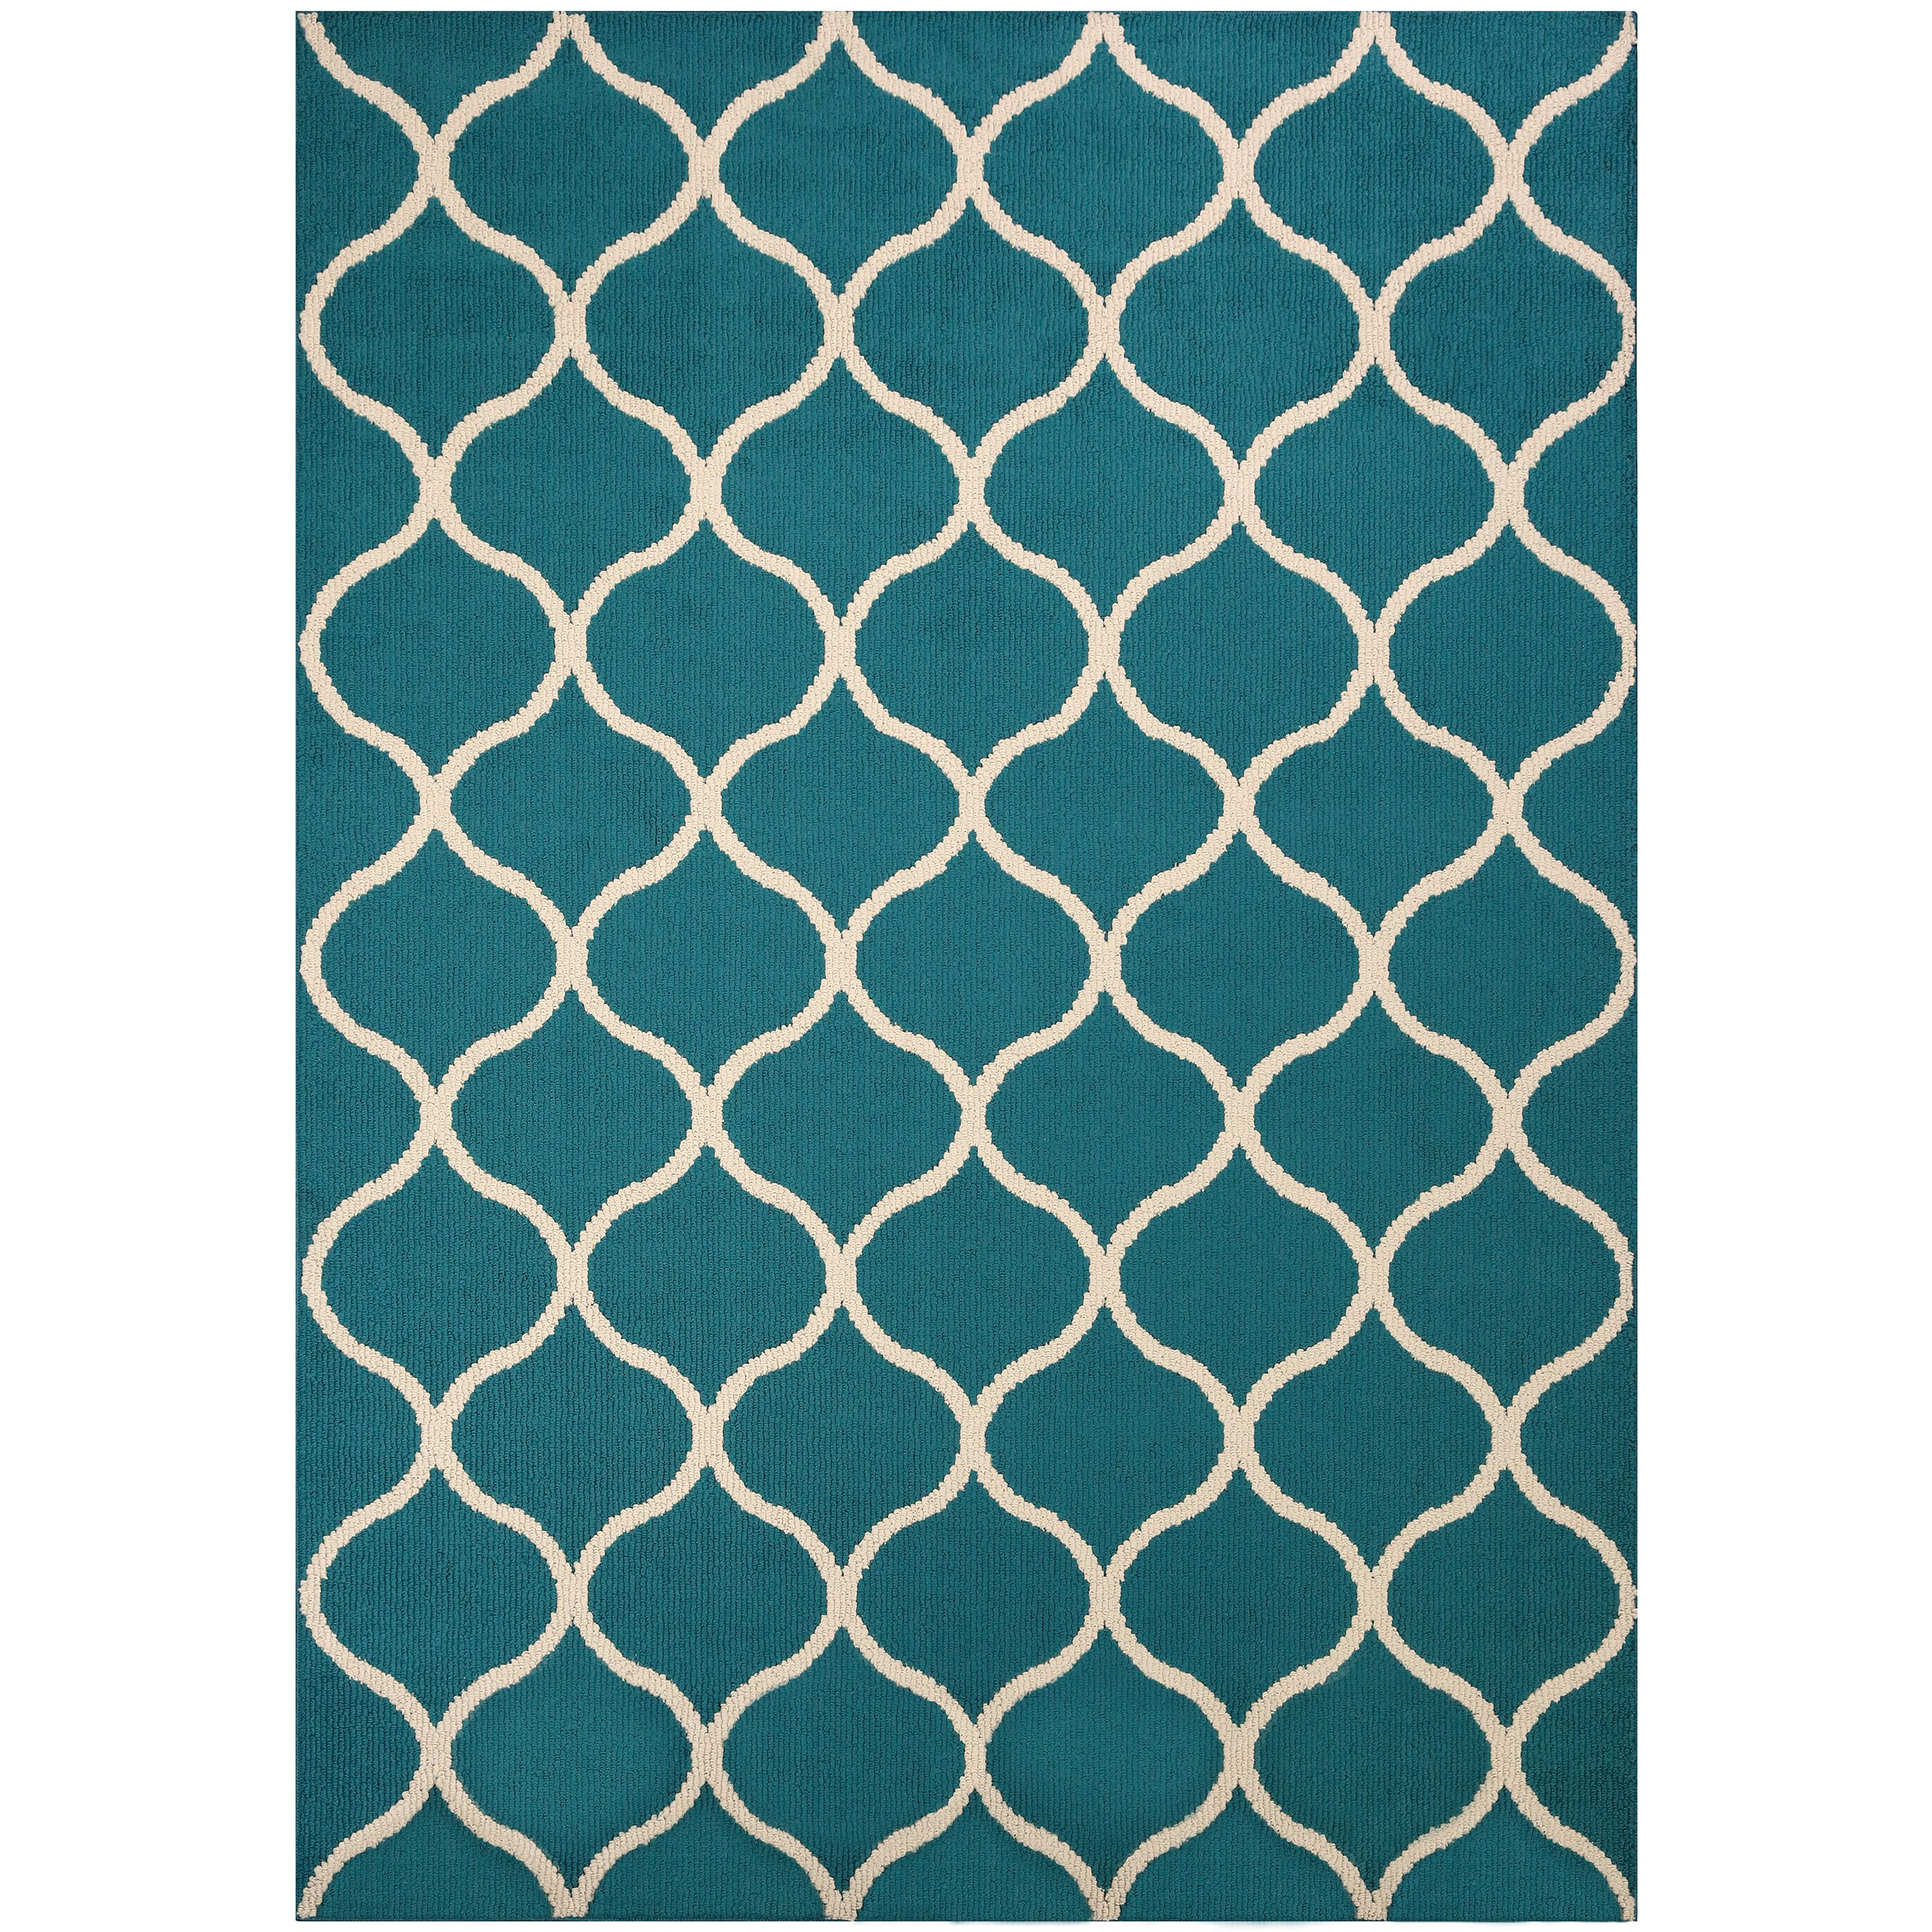 Mainstays Sheridan Fret Area Rug or Runner, Multiple Sizes and ...